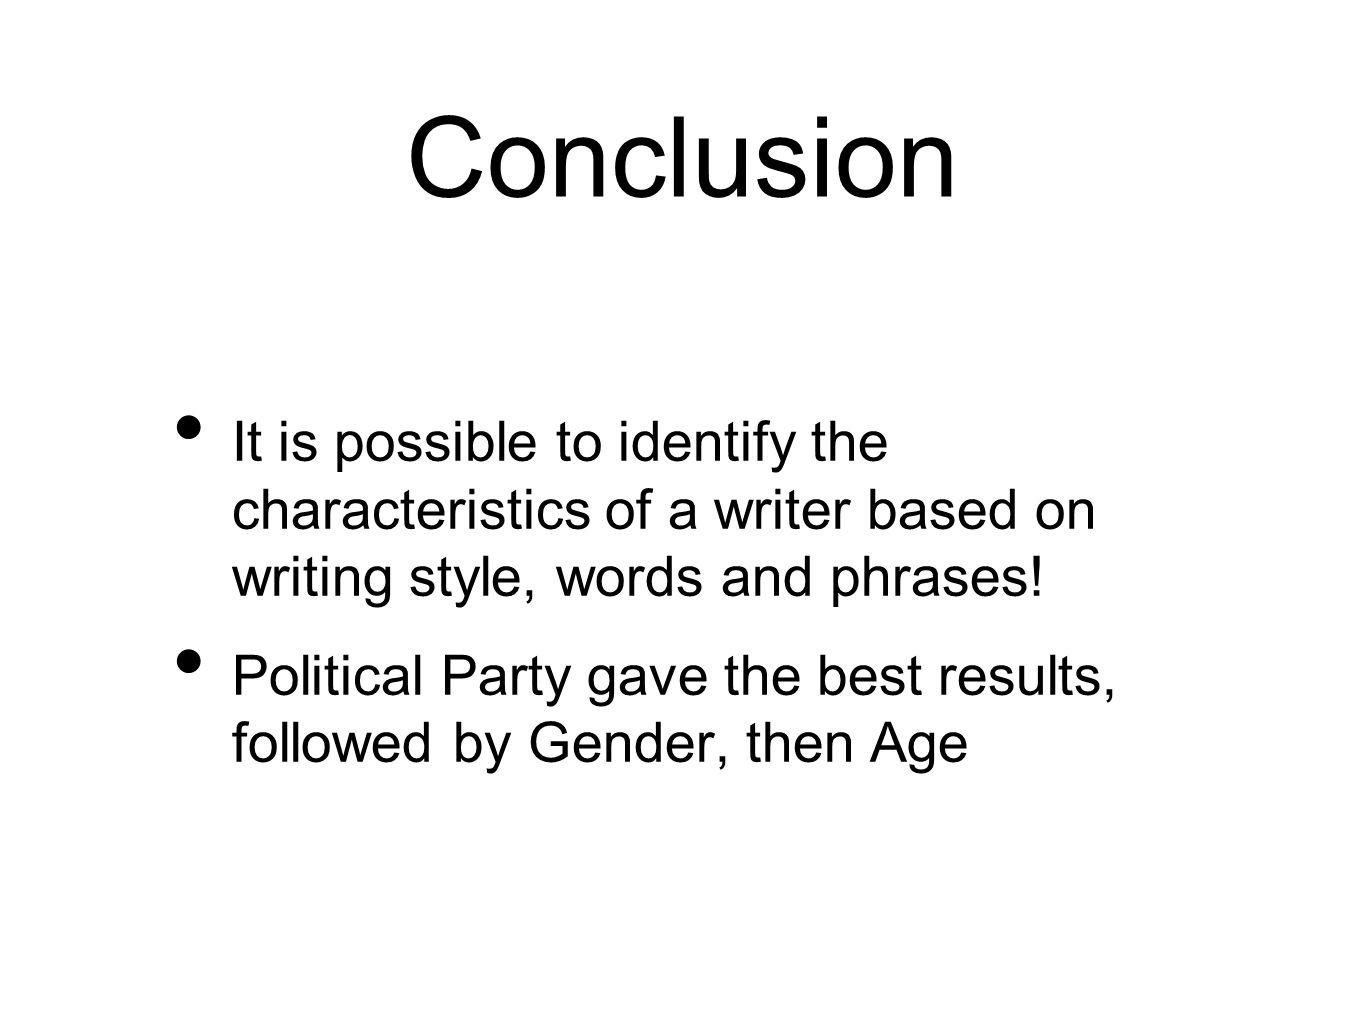 Conclusion It is possible to identify the characteristics of a writer based on writing style, words and phrases! Political Party gave the best results